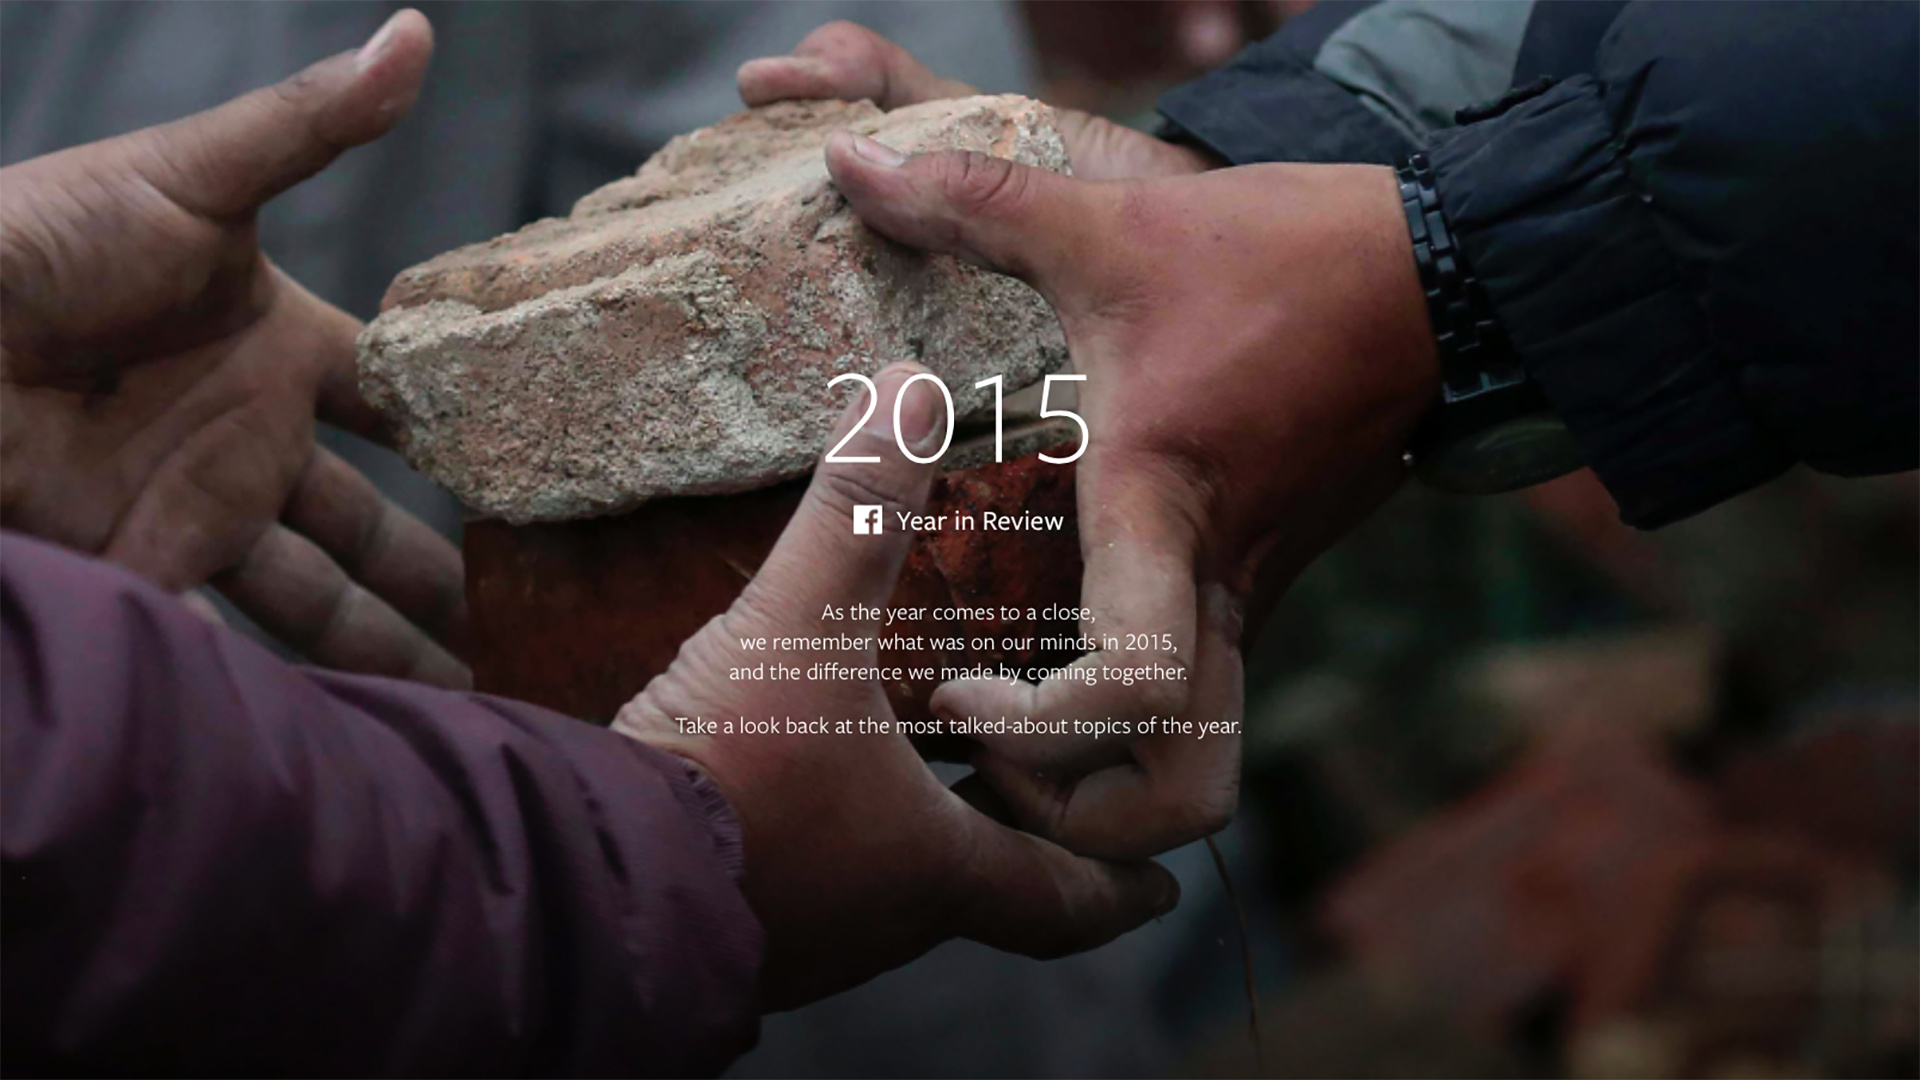 回顧這一年,Facebook 公佈「2015 Year in Review」